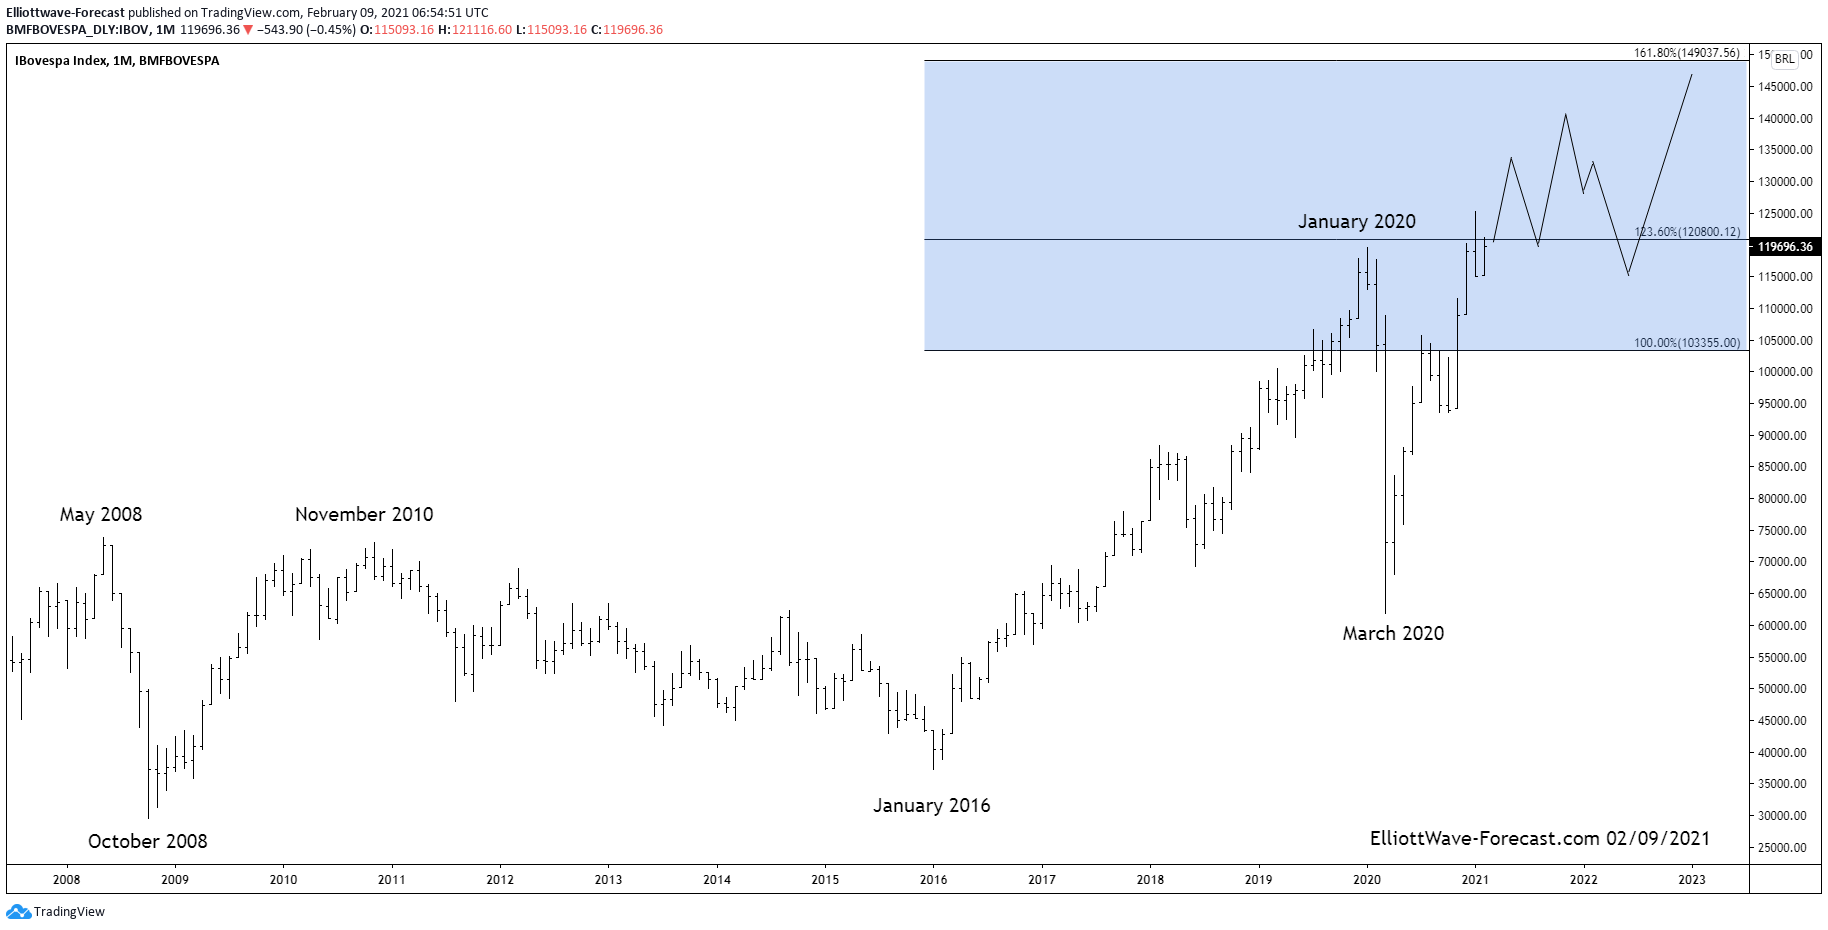 Bovespa Brazil Index Long Term Cycles and Bullish Trend